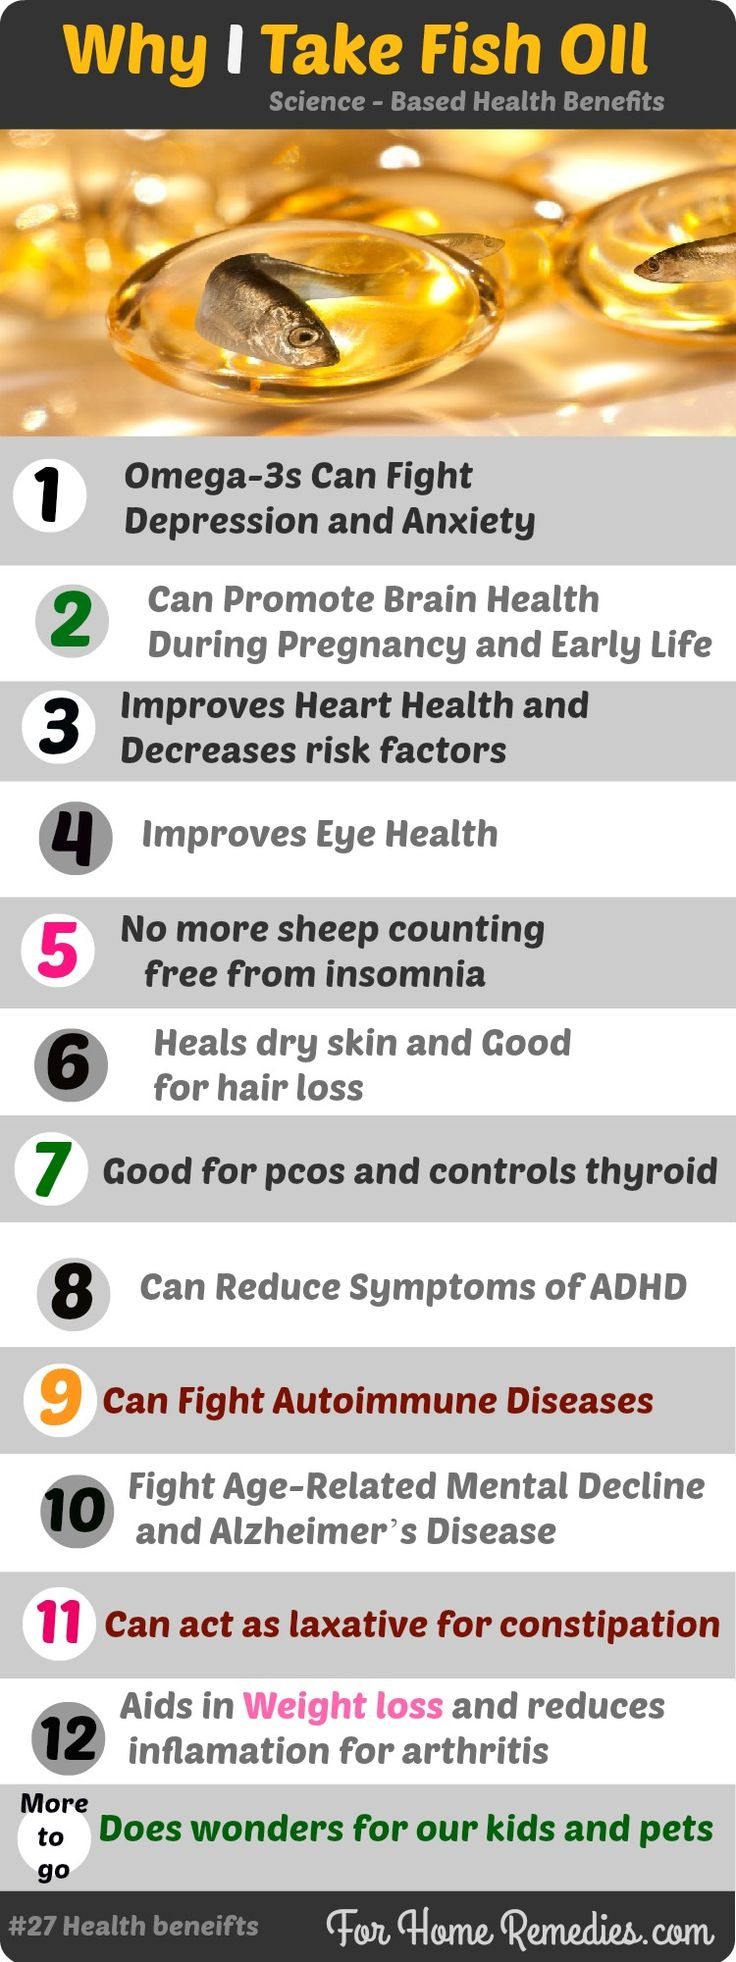 How Fish Oil Could Help Me #27 Powerful Omega 3 Fatty Acid Remedies. Amazing Health Benefits of Fish oil: Home Remedies for Depression, Insomnia, Heart, Dry Skin, Hair, Constipation, Thyroid, Cholesterol, Pcos, Dandruff and ..